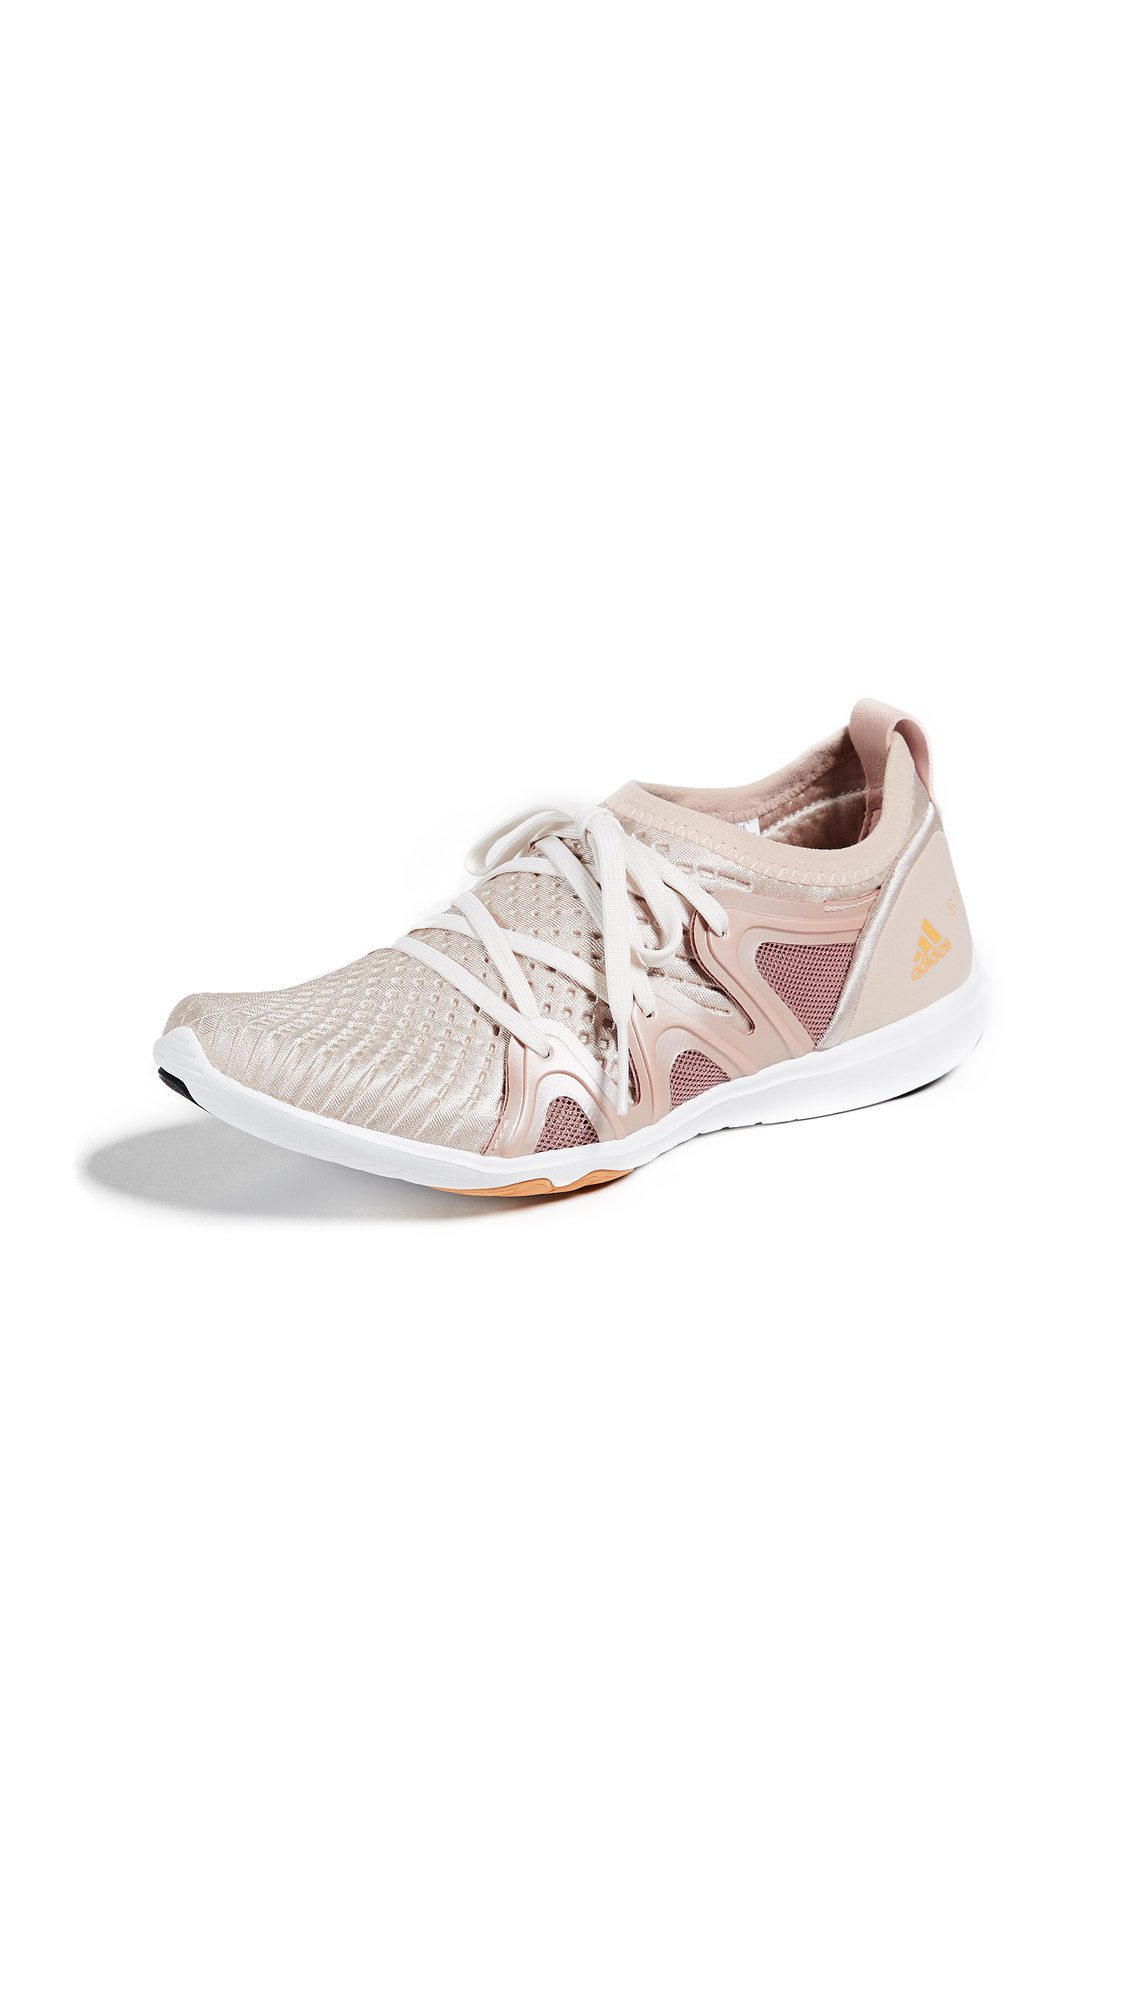 adidas by Stella McCartney CrazyMove Pro Sneakers - Pearl Rose/Burnt Rose/Black